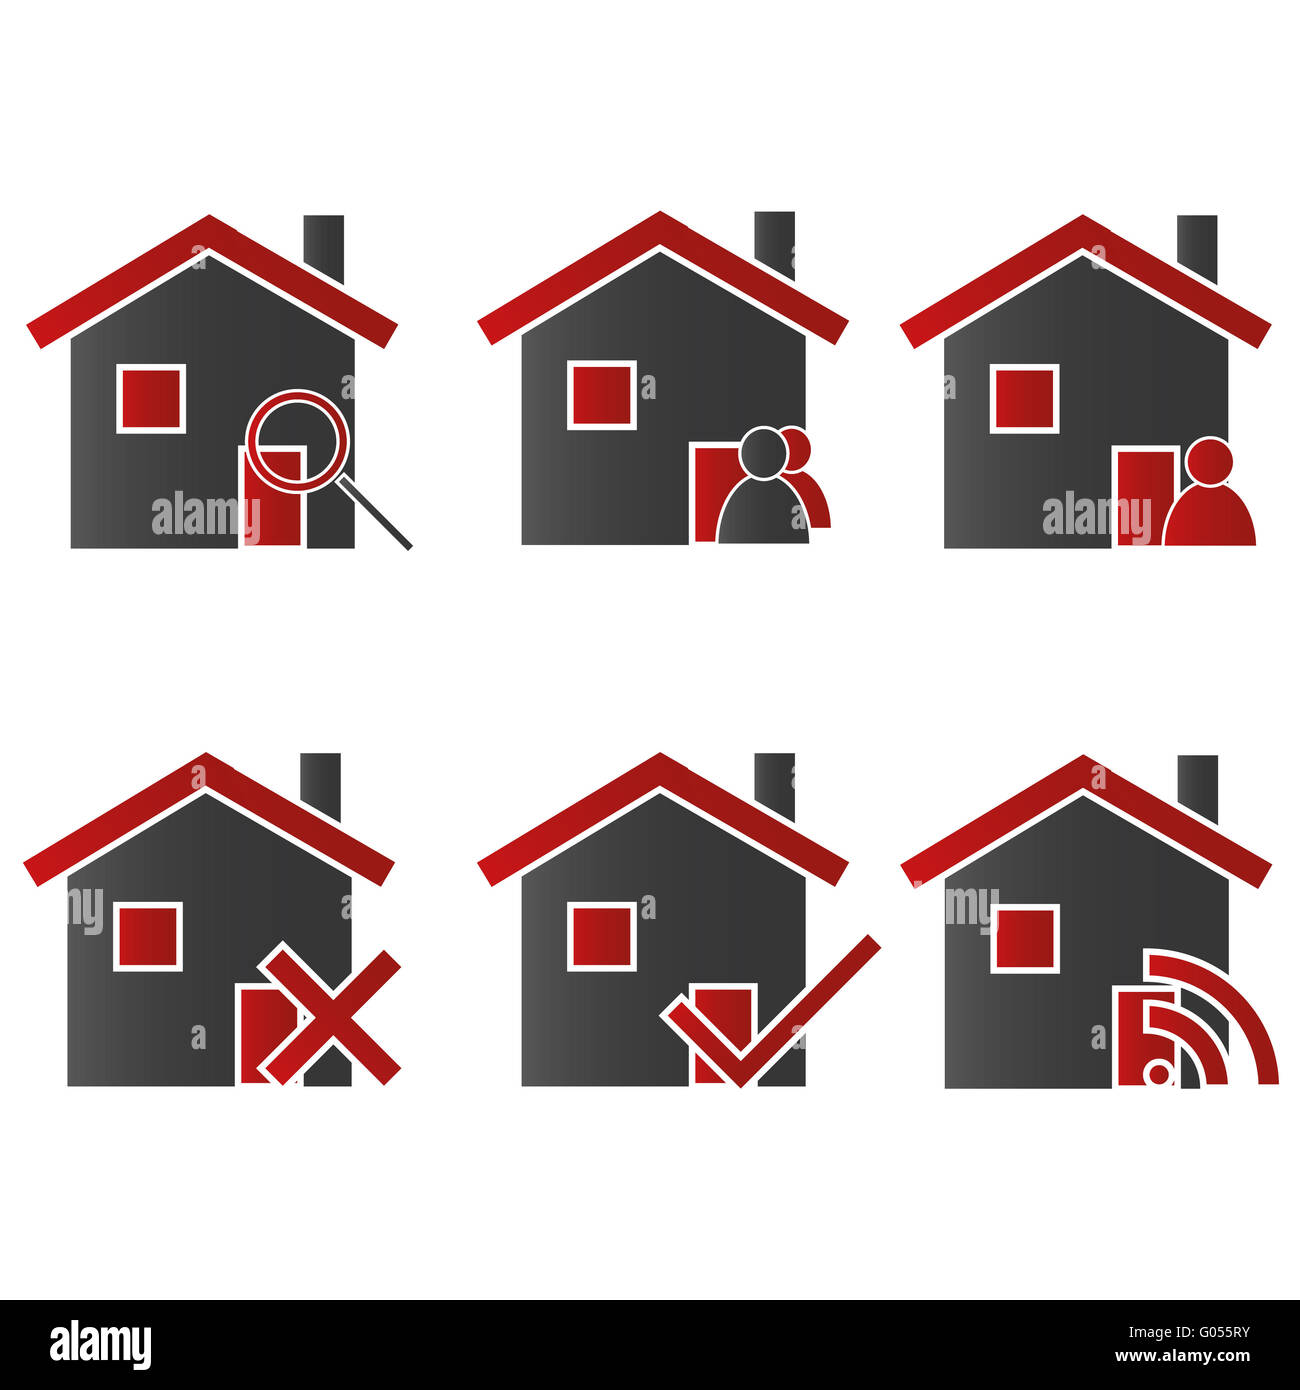 Homes with Icons Red 2 - Stock Image